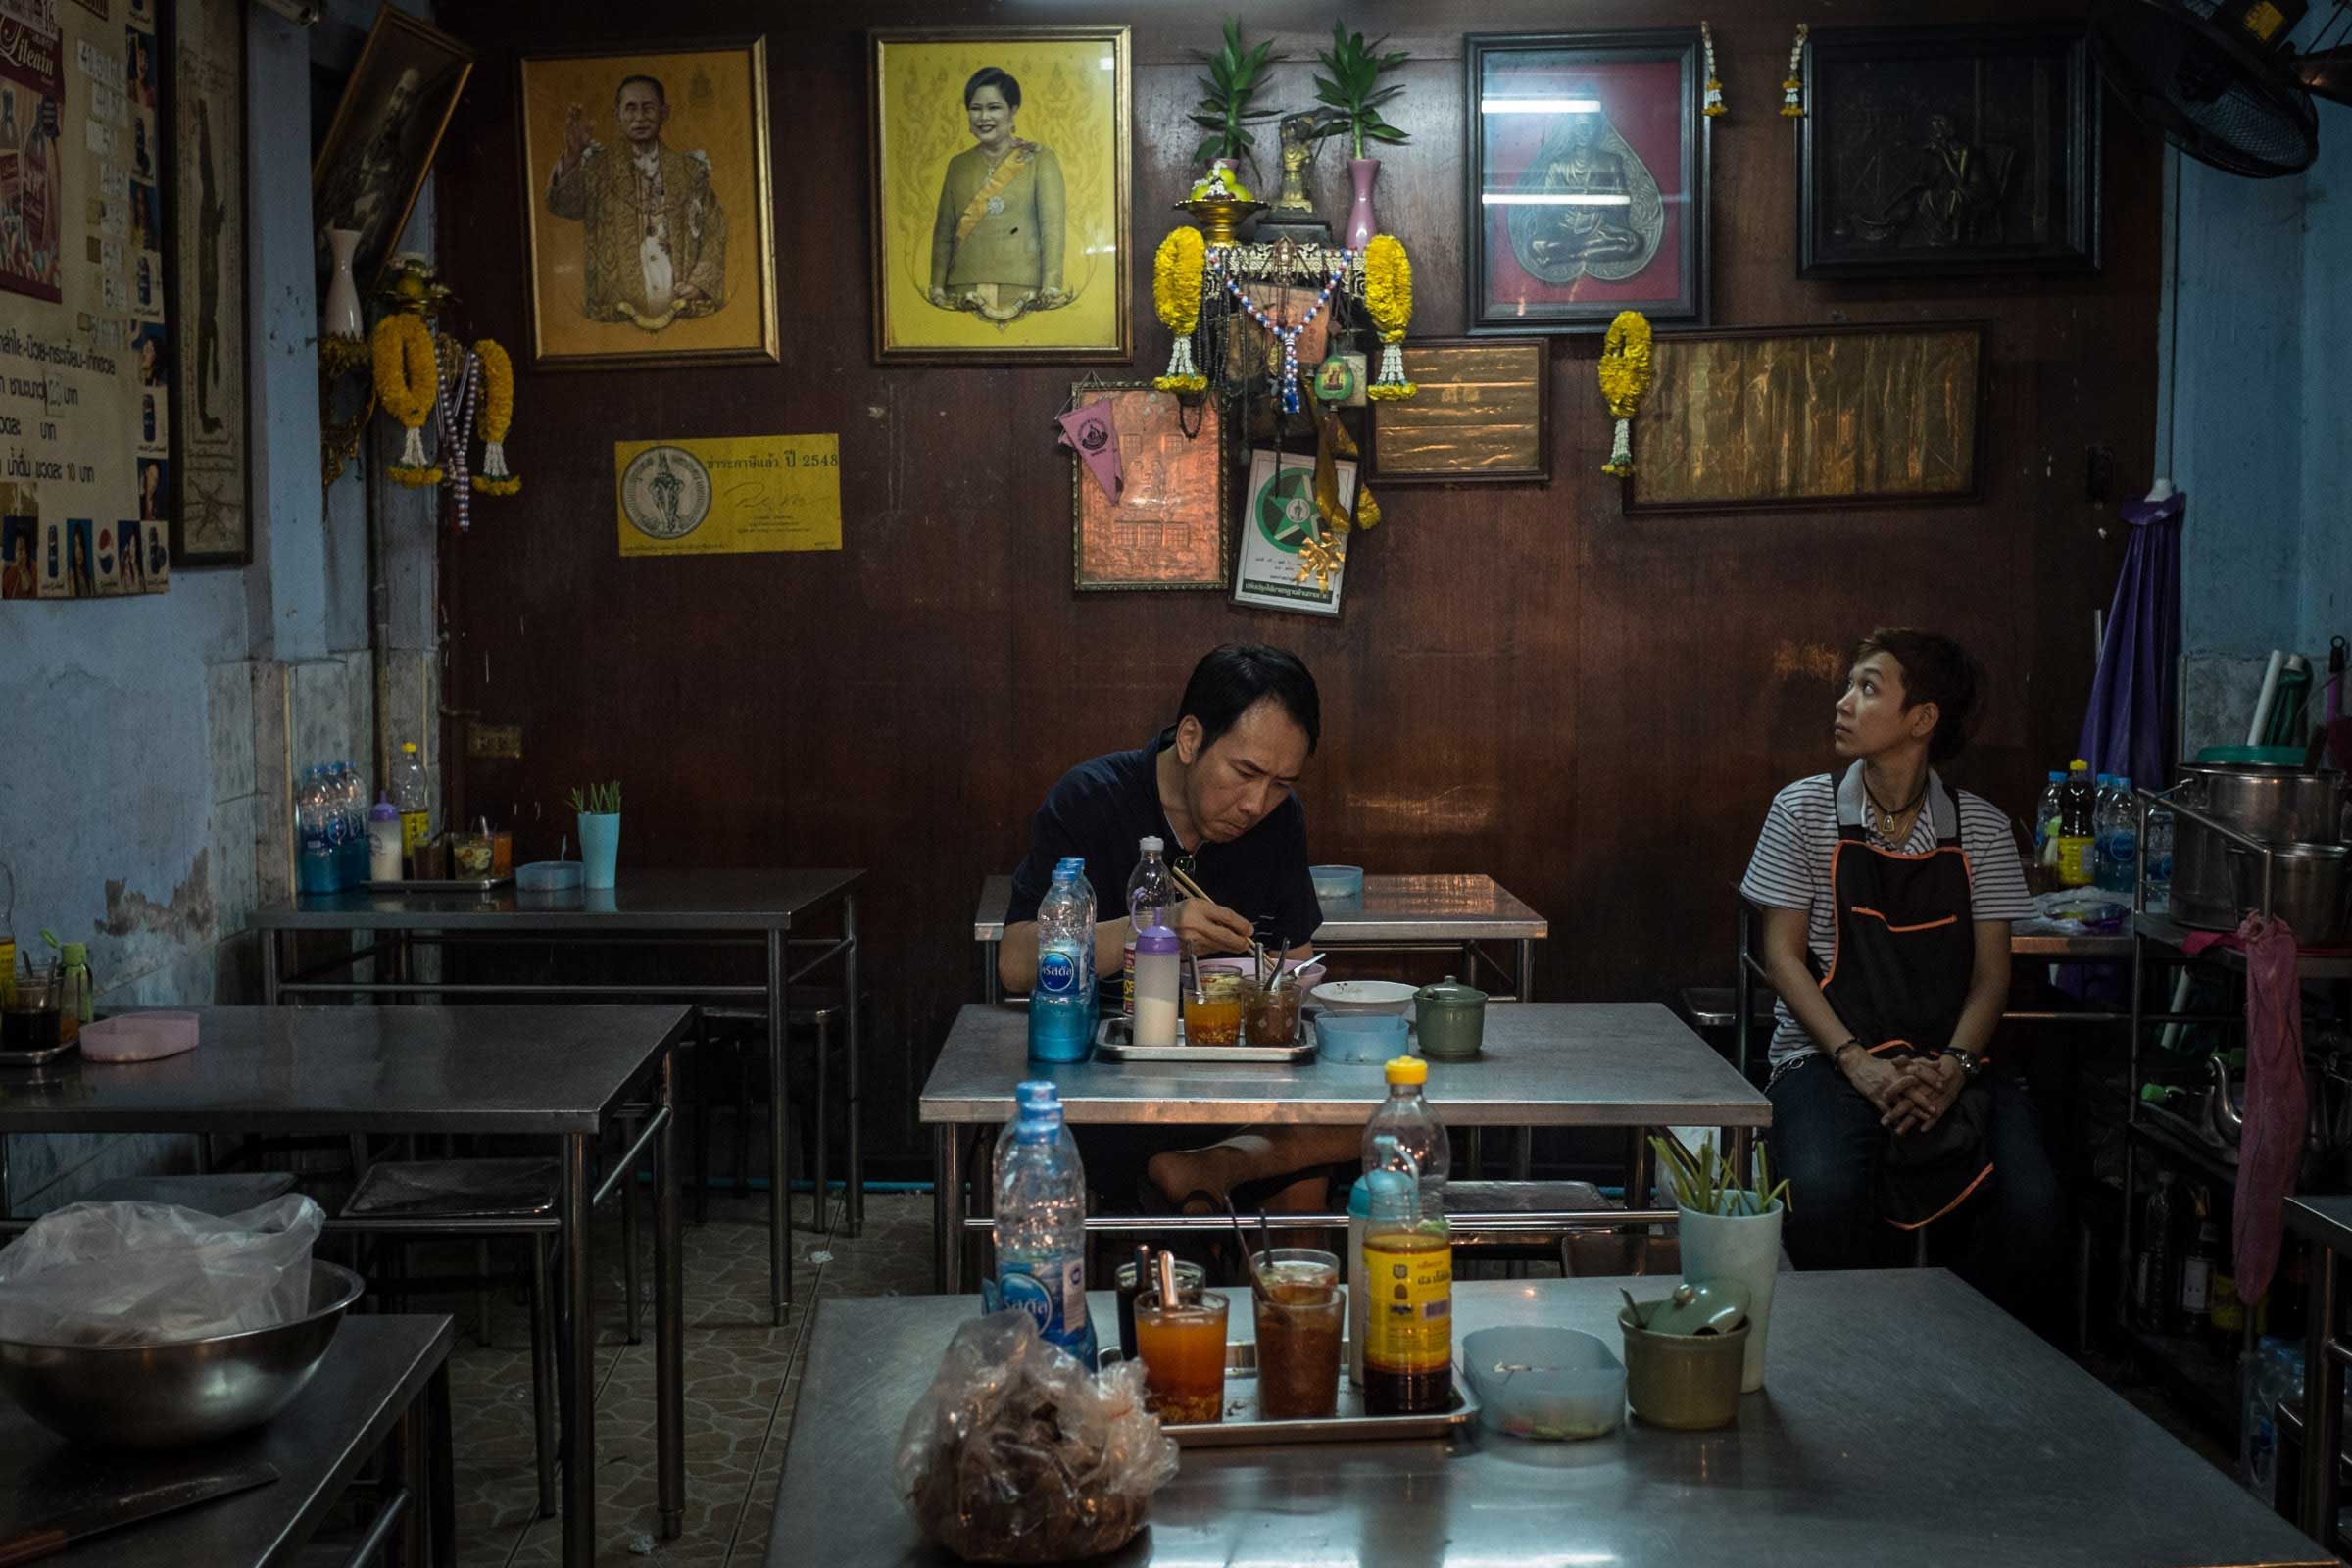 Portraits of King Bhumibol and Queen Sirikit hang in a noodle shop in Bangkok, Nov. 2014.